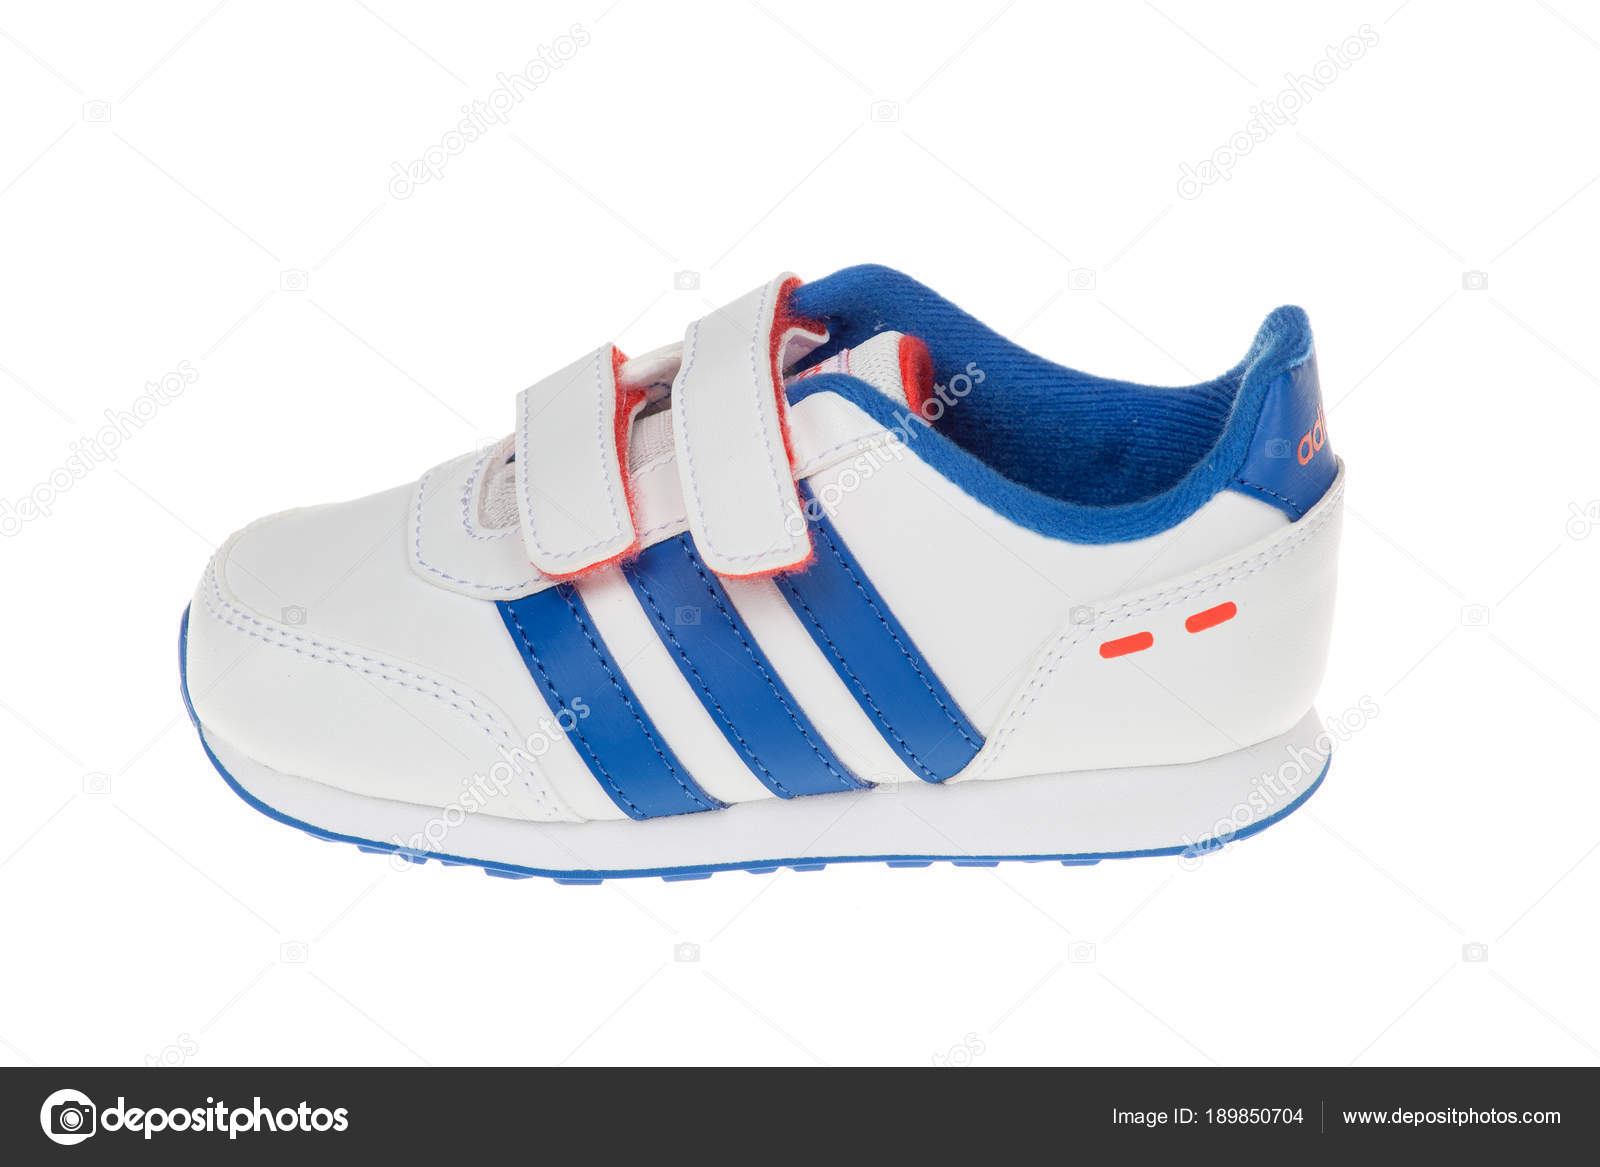 SWITCH Isolated 13 children shoe ADIDAS VS Varna MAY 2016 Bulgaria TzOwzYq7